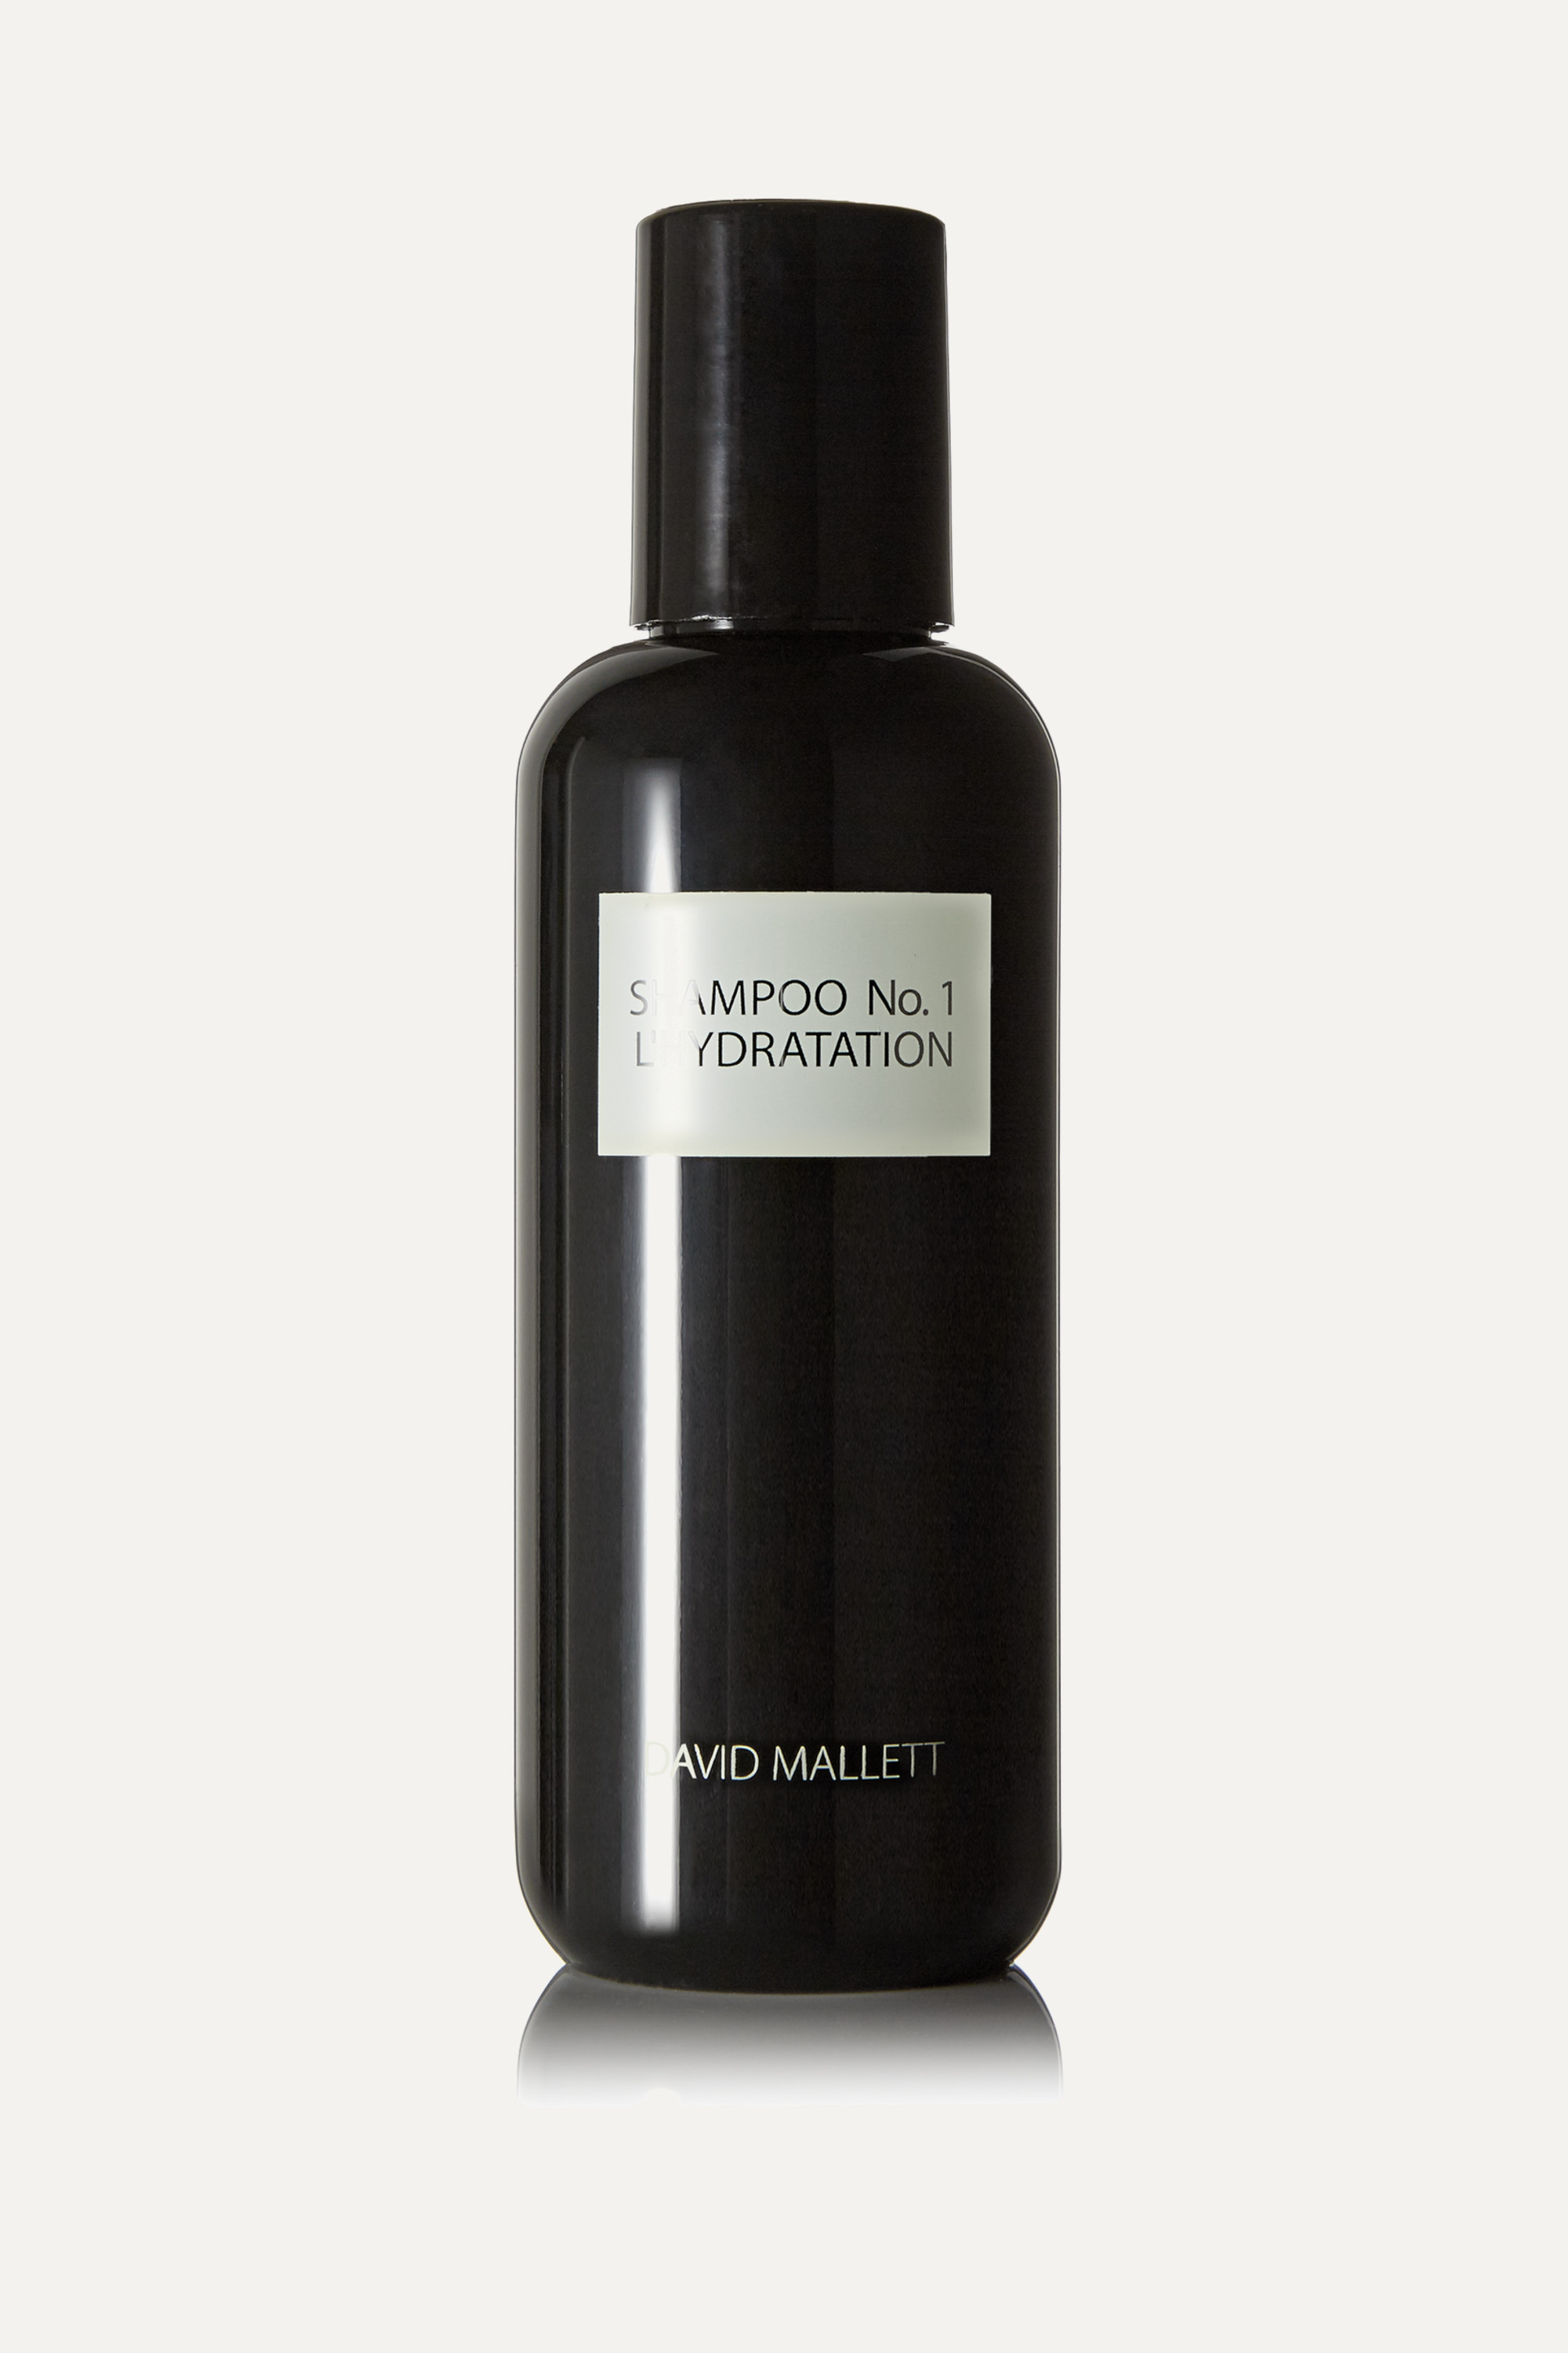 David Mallett Shampoo No.1: L'Hydration, 250ml